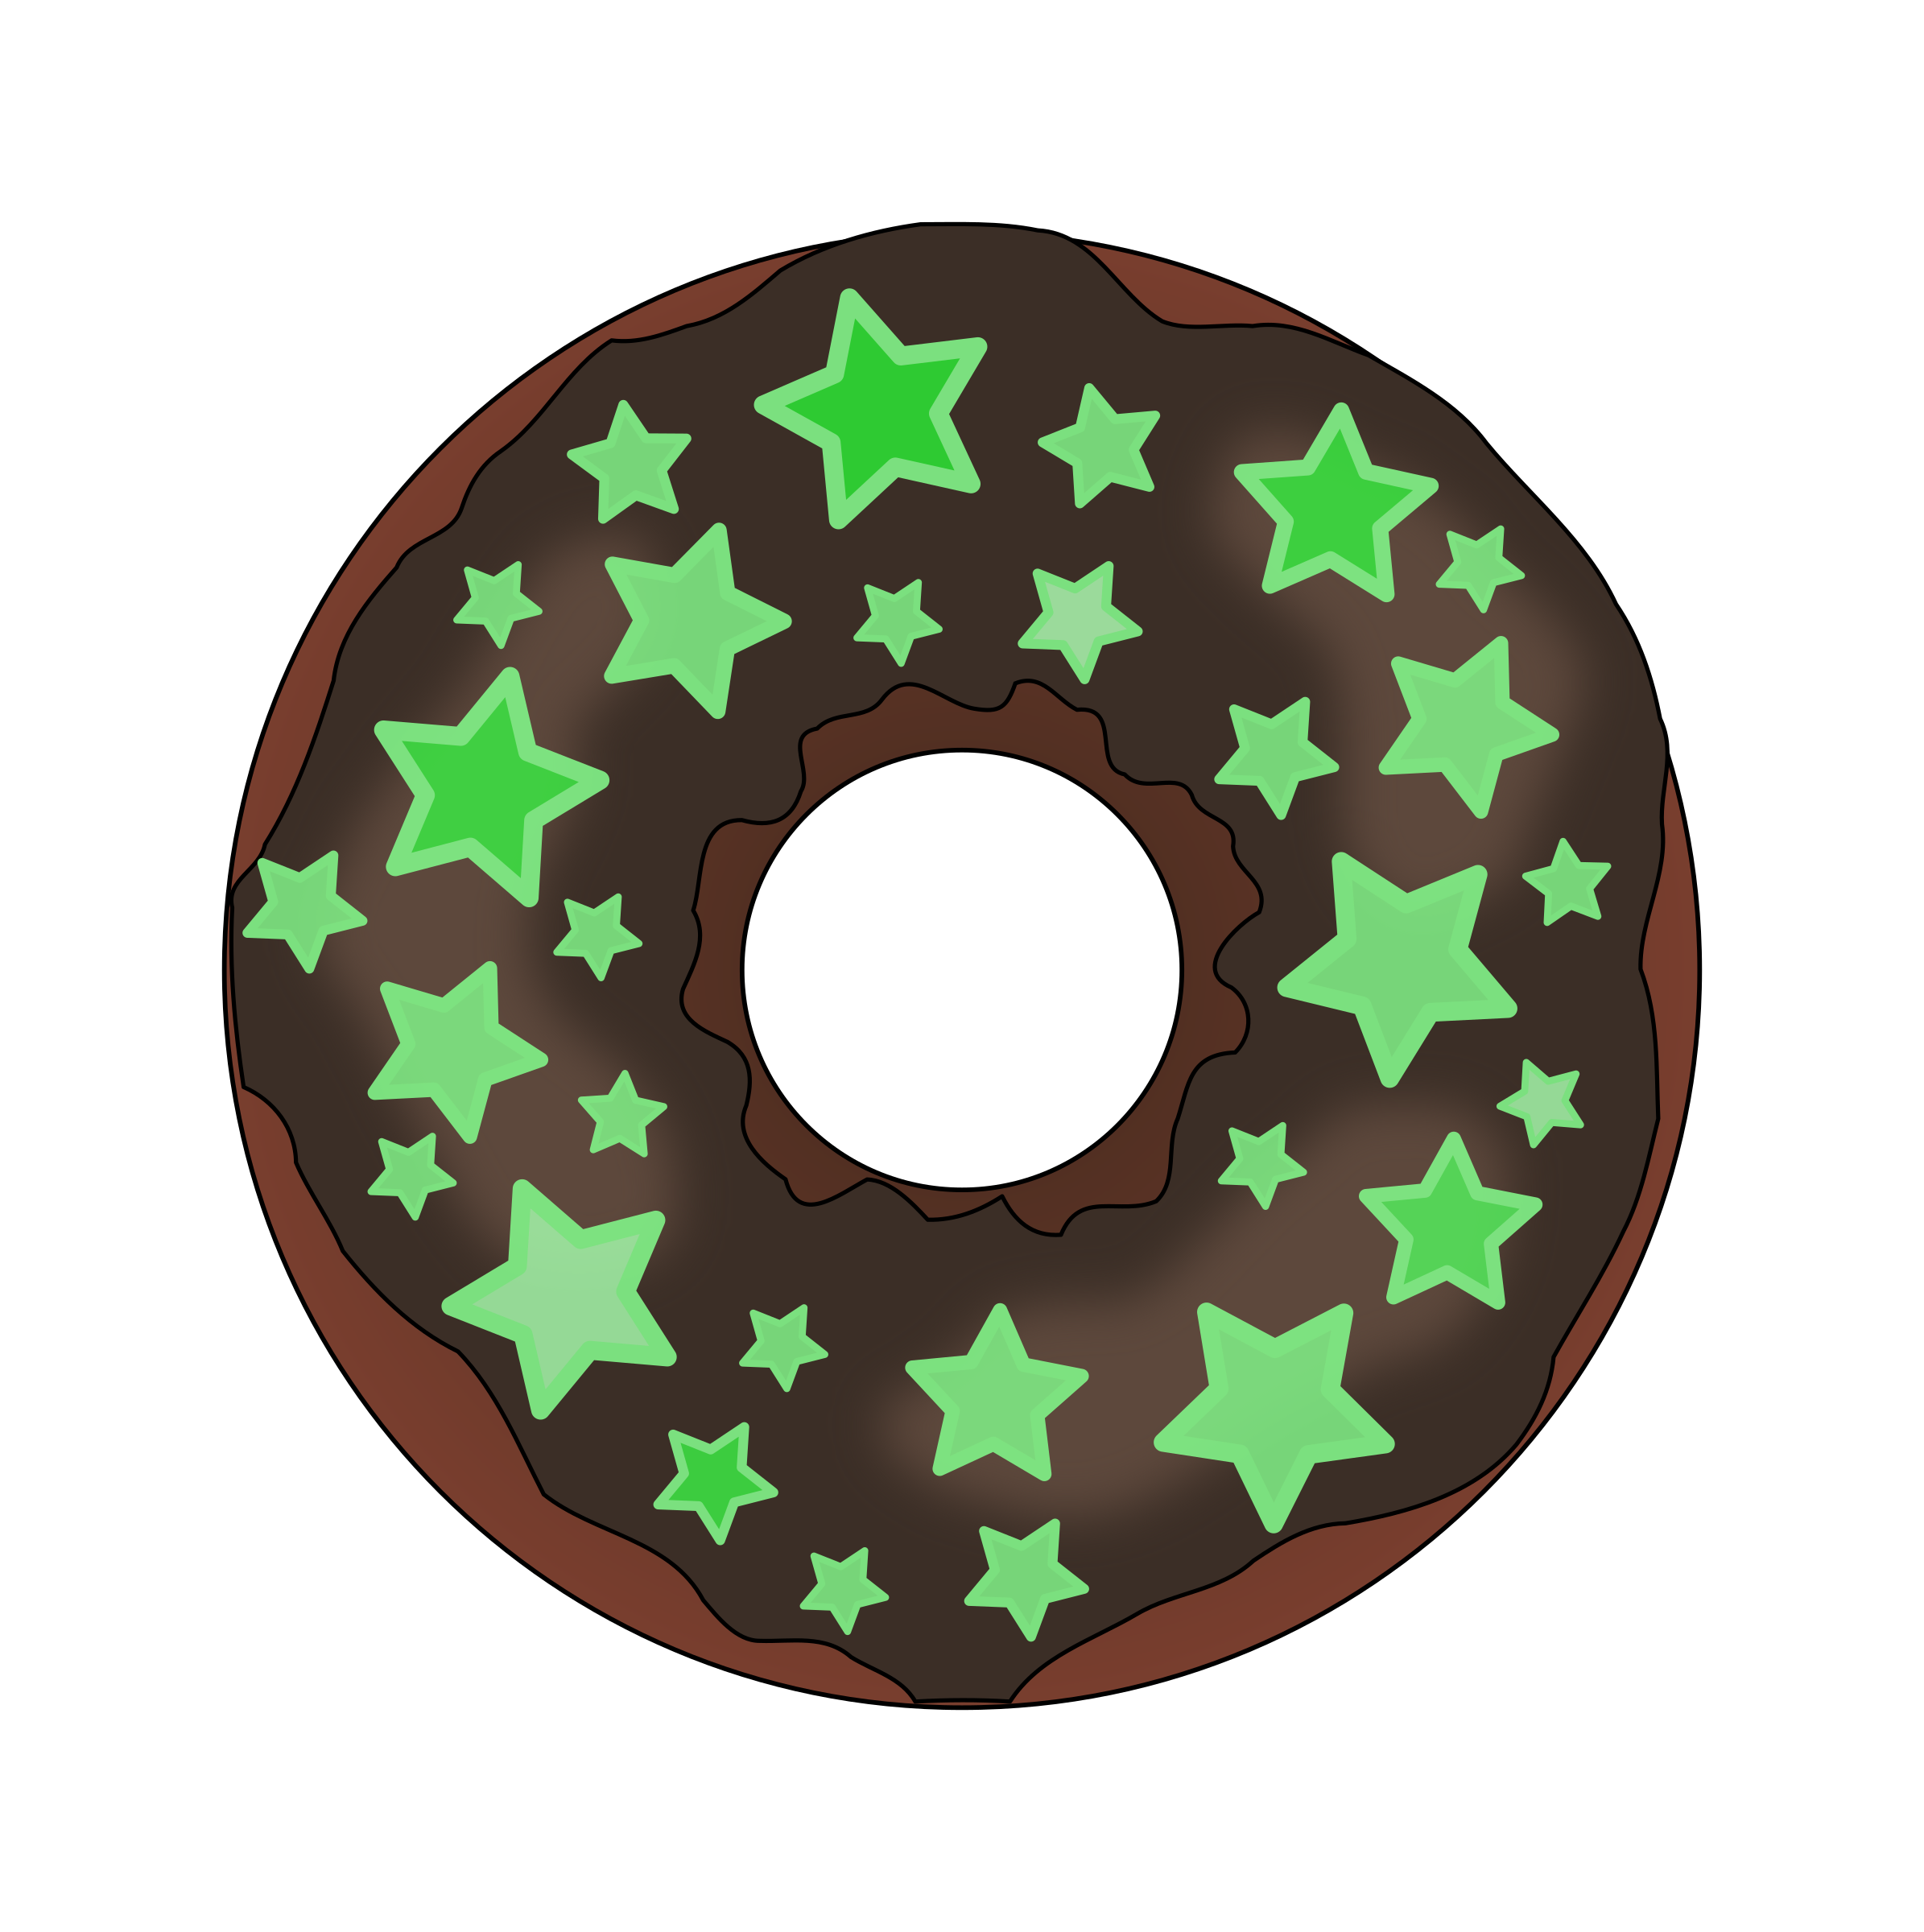 Glow in the dark. Desserts clipart donut